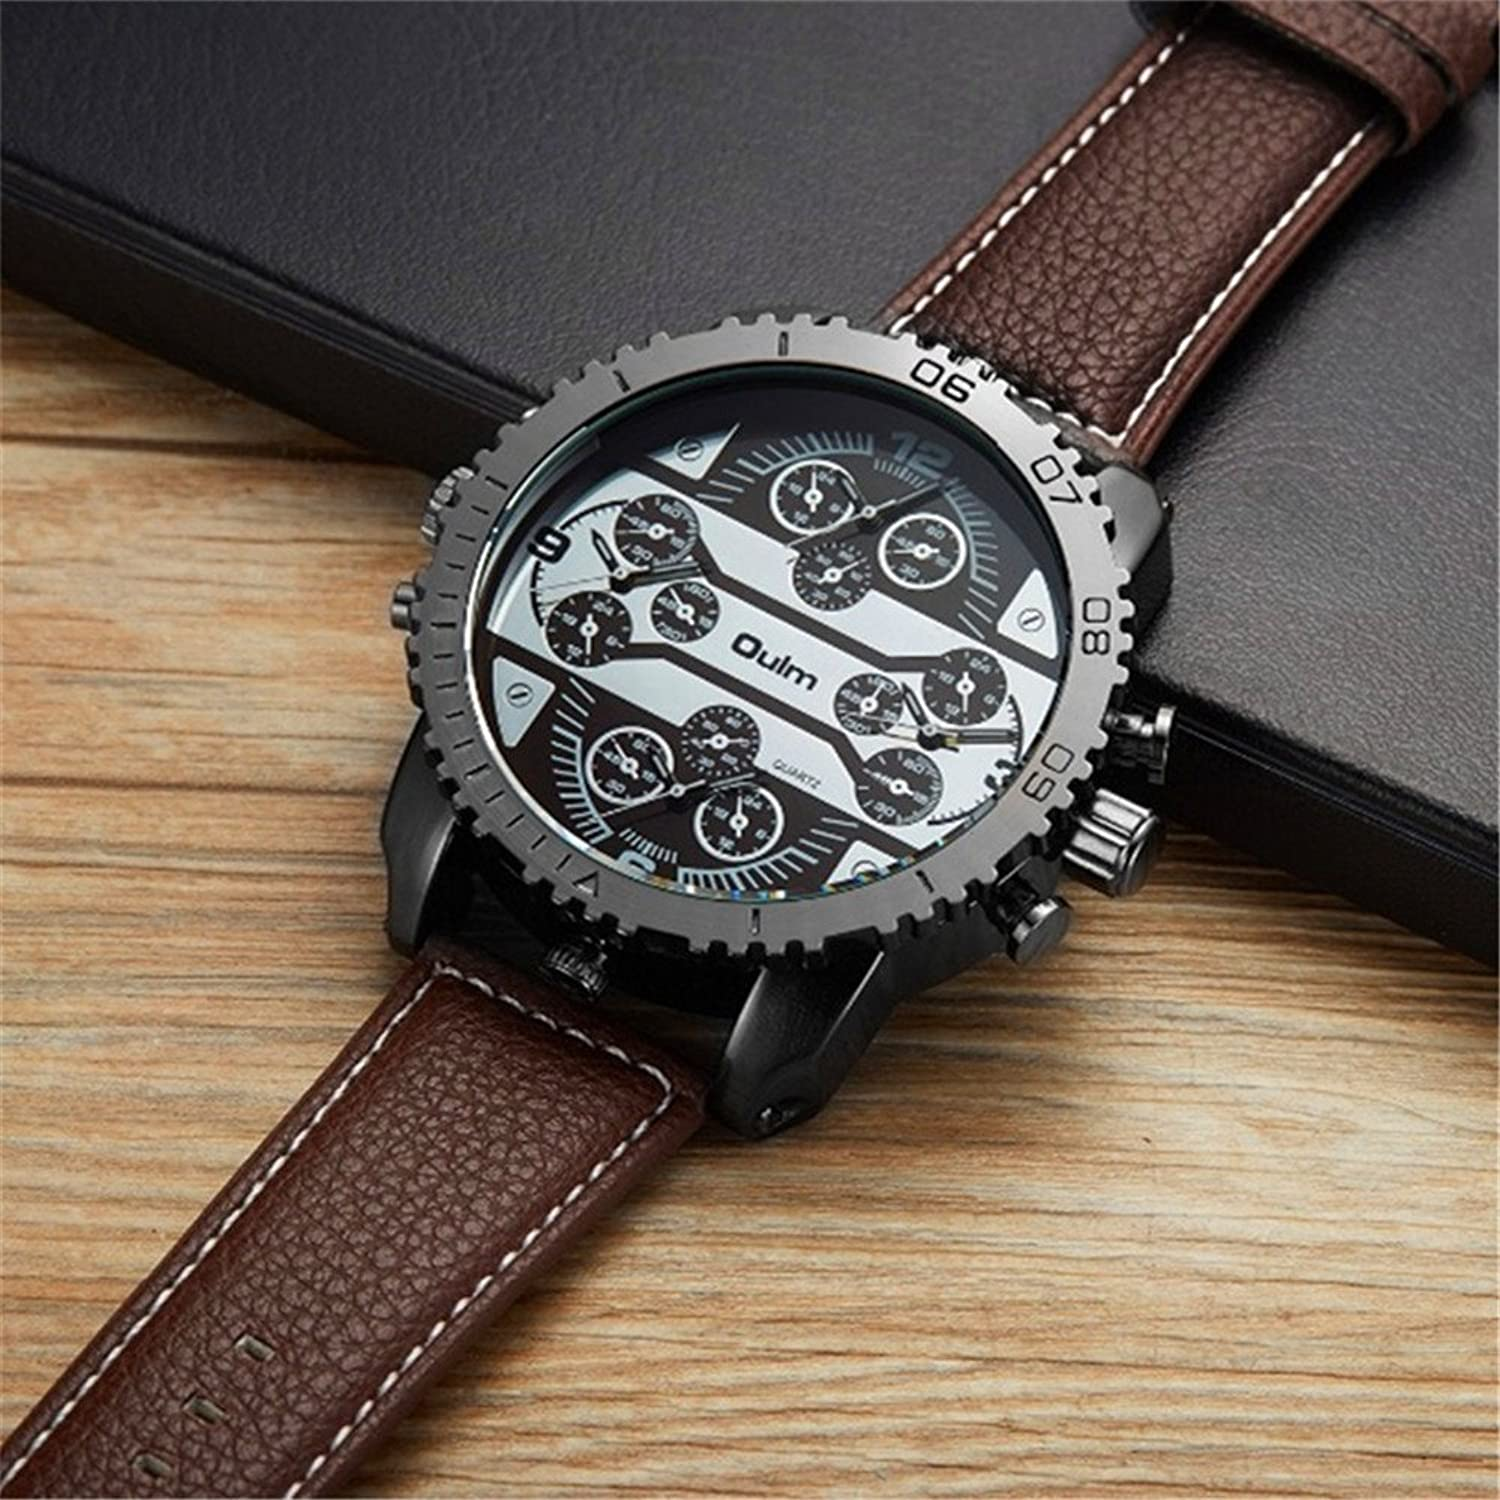 Amazon.com: Big Dial Oulm Watches Male Watch Montres de Marque de Luxe Relojes Lujo Marcas Men Military Army Clock Erkek Saat 4 Time Zone: Watches